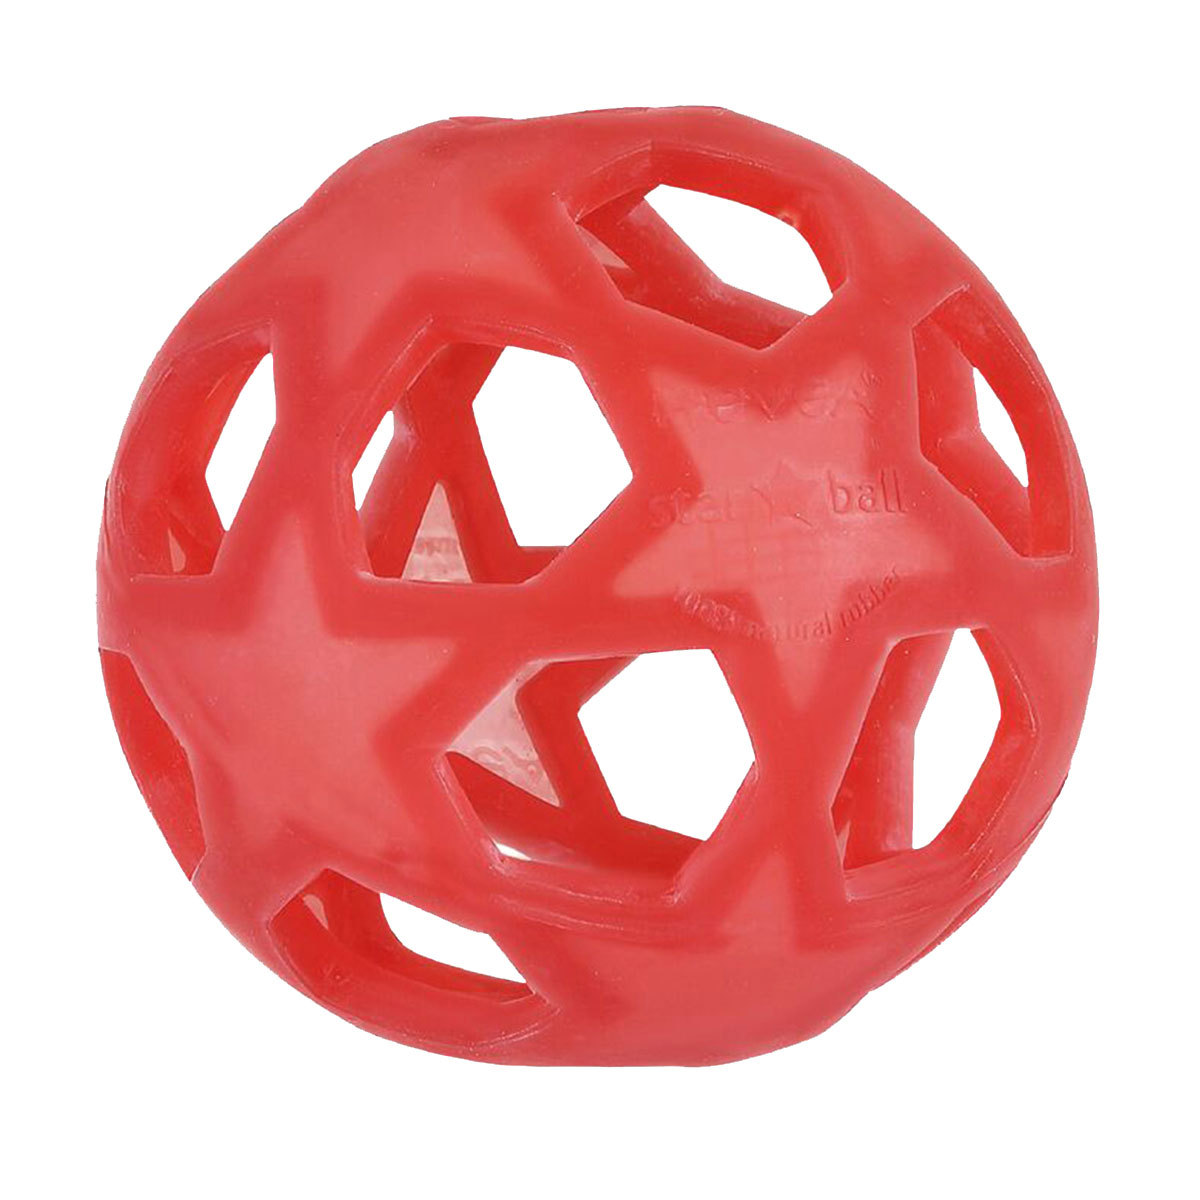 Dentition Star Ball Caoutchouc Naturel - Framboise